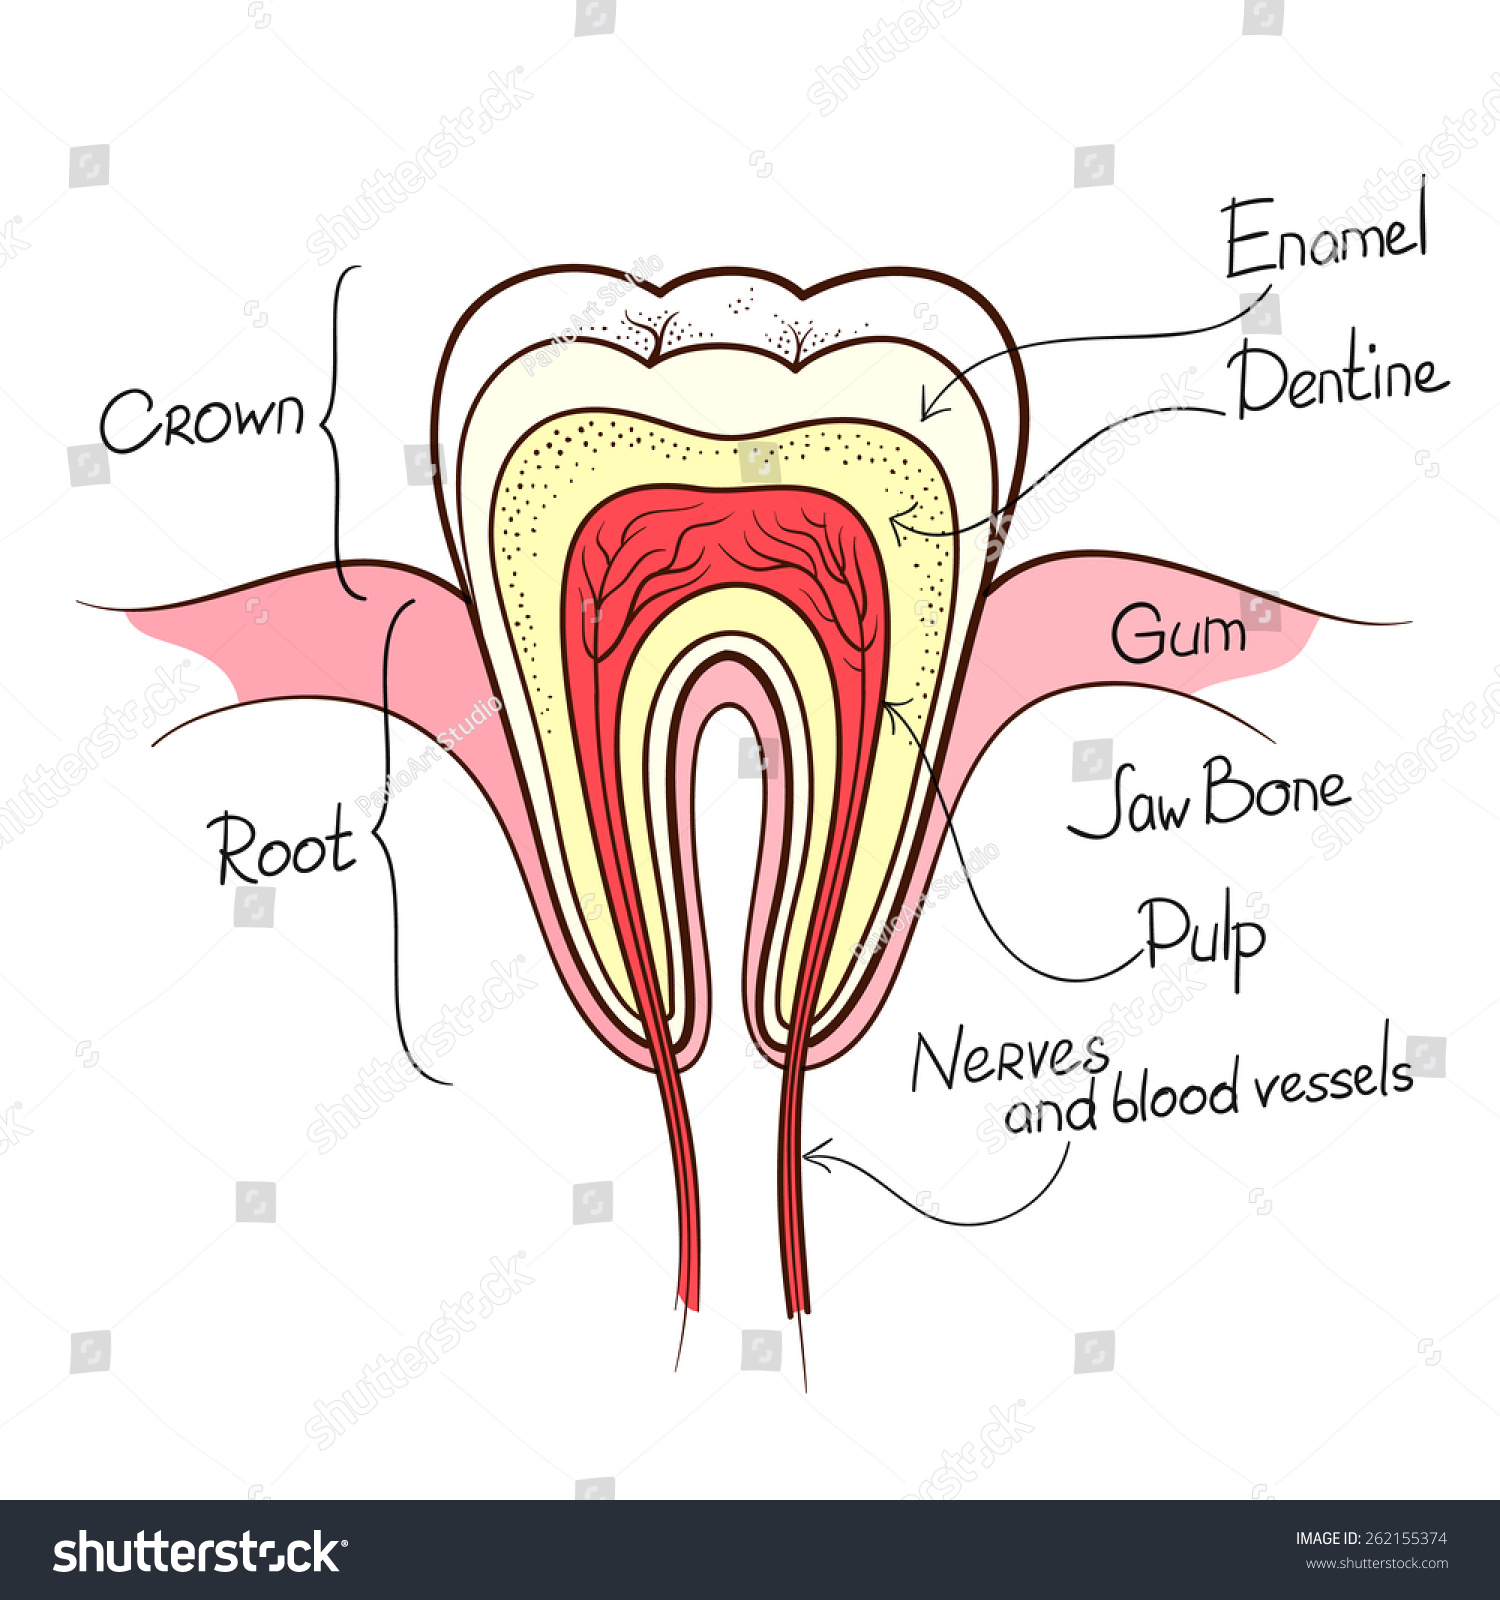 Tooth Cut Anatomy Layout Outline Color Stock Photo (Photo, Vector ...